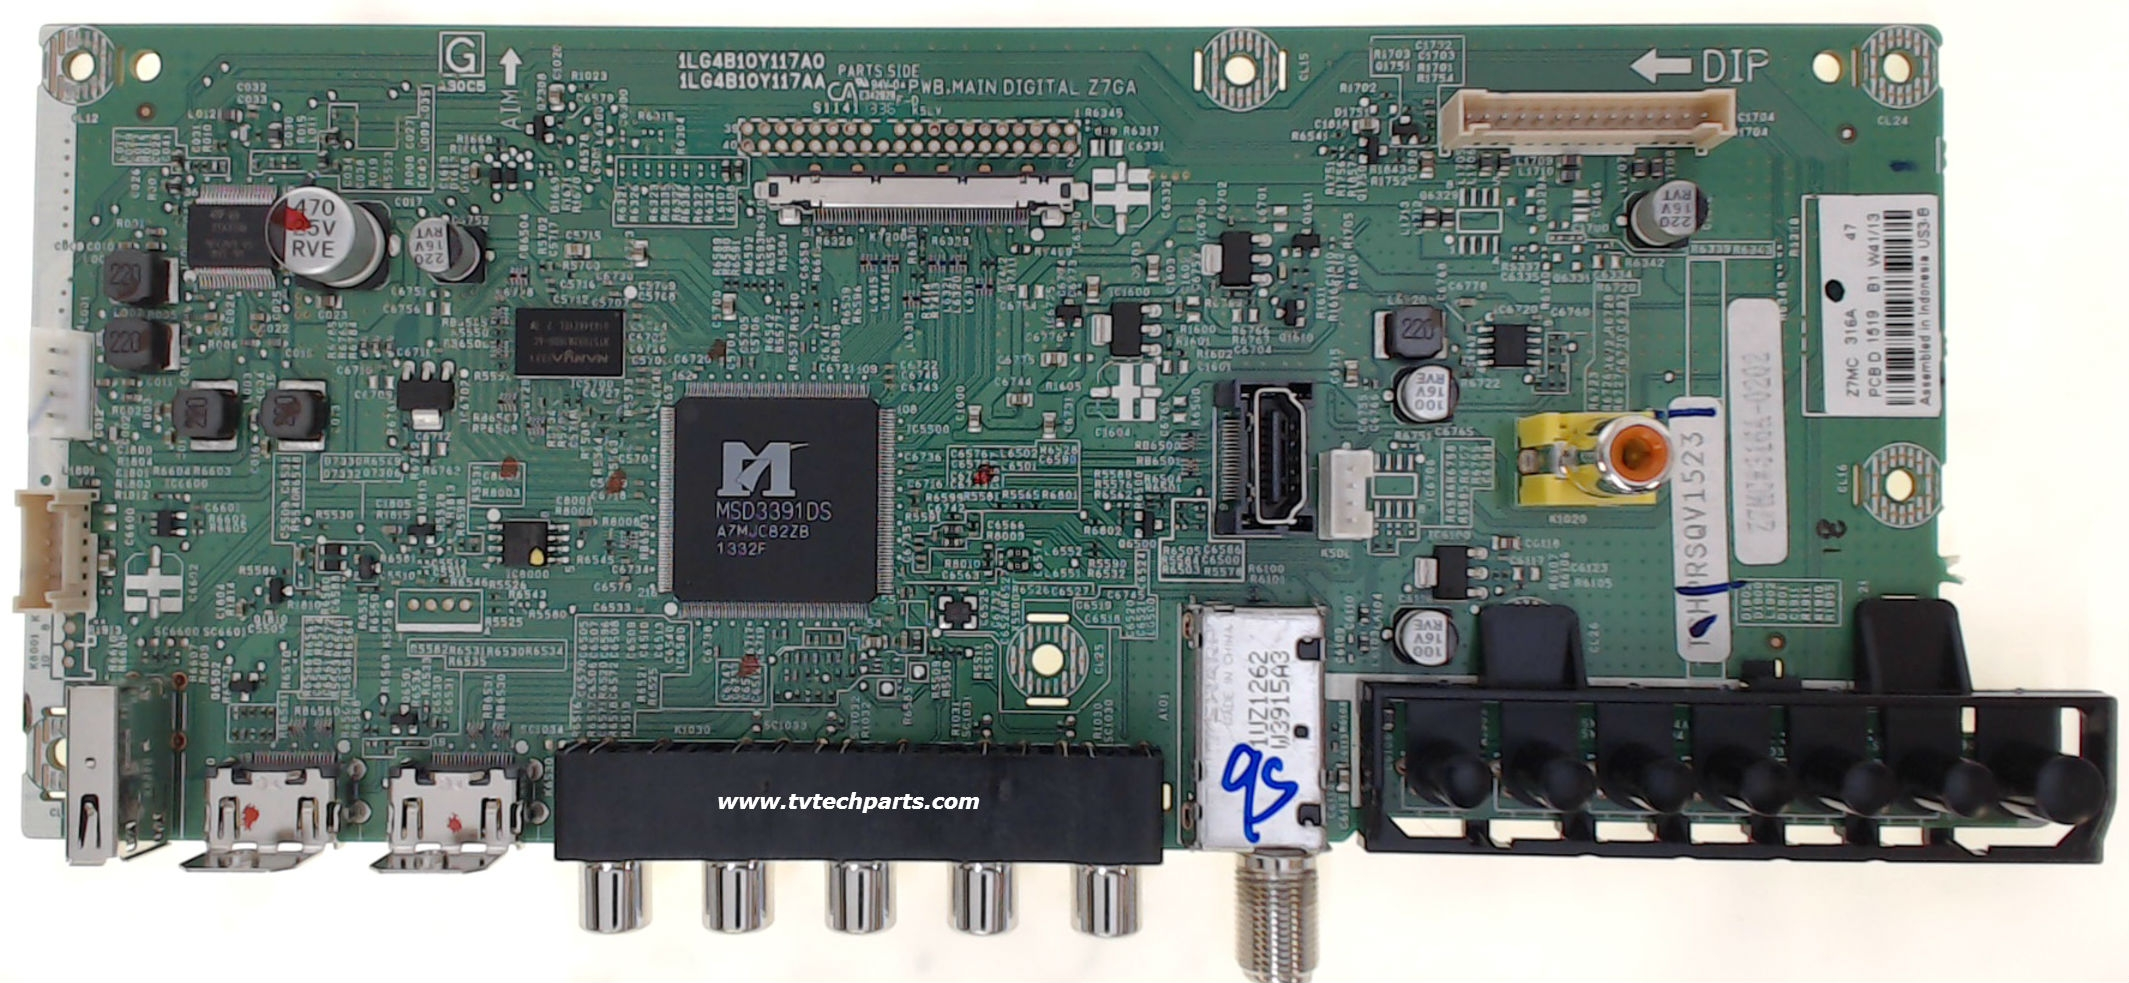 Sanyo TV Model DP55D33 Main Audio Video HDMI Tuner Board Part Number 1LG4B10Y117A0-Z7MC